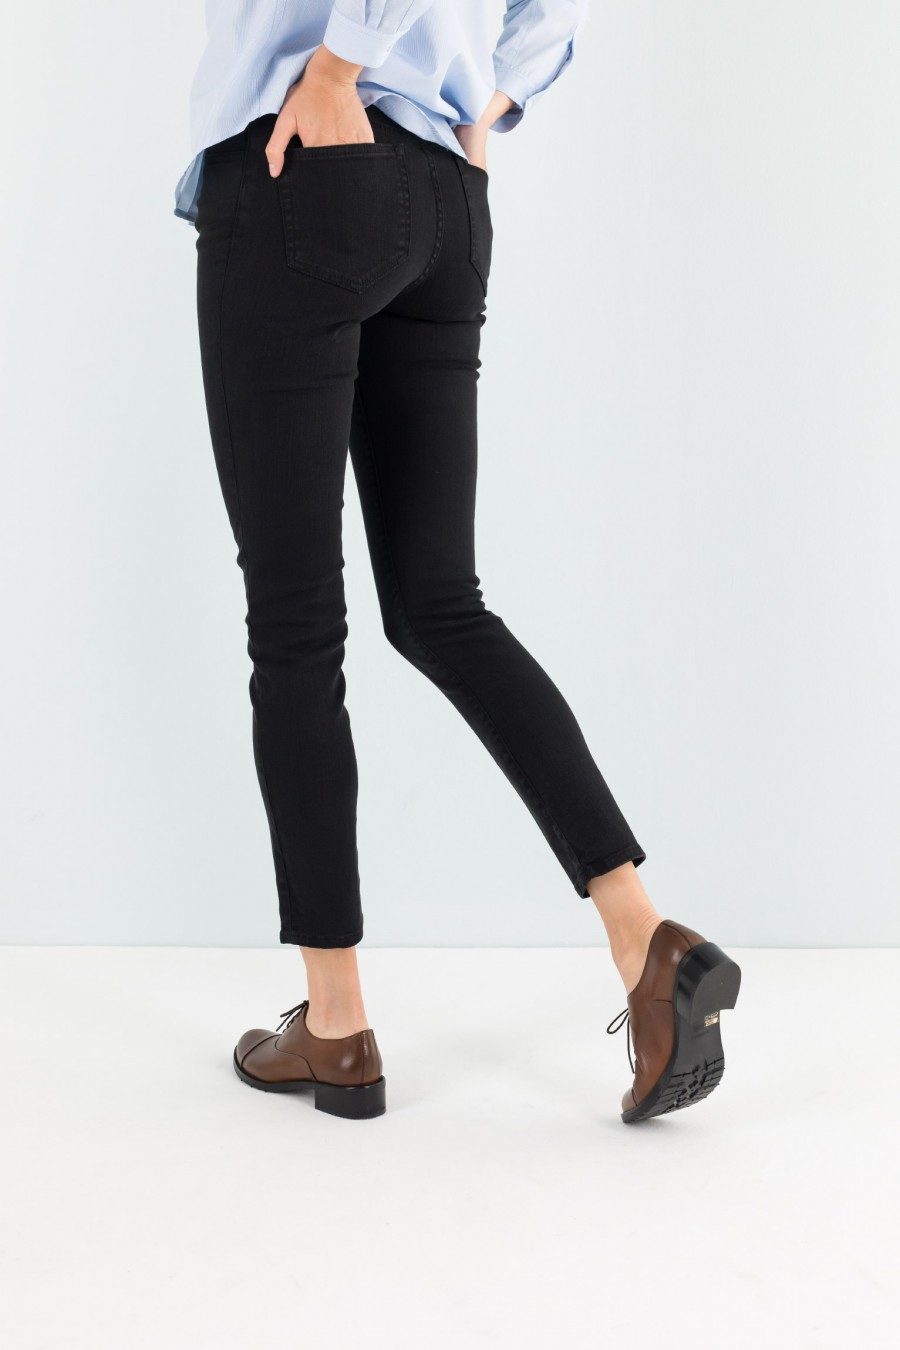 Pantalone in denim nero